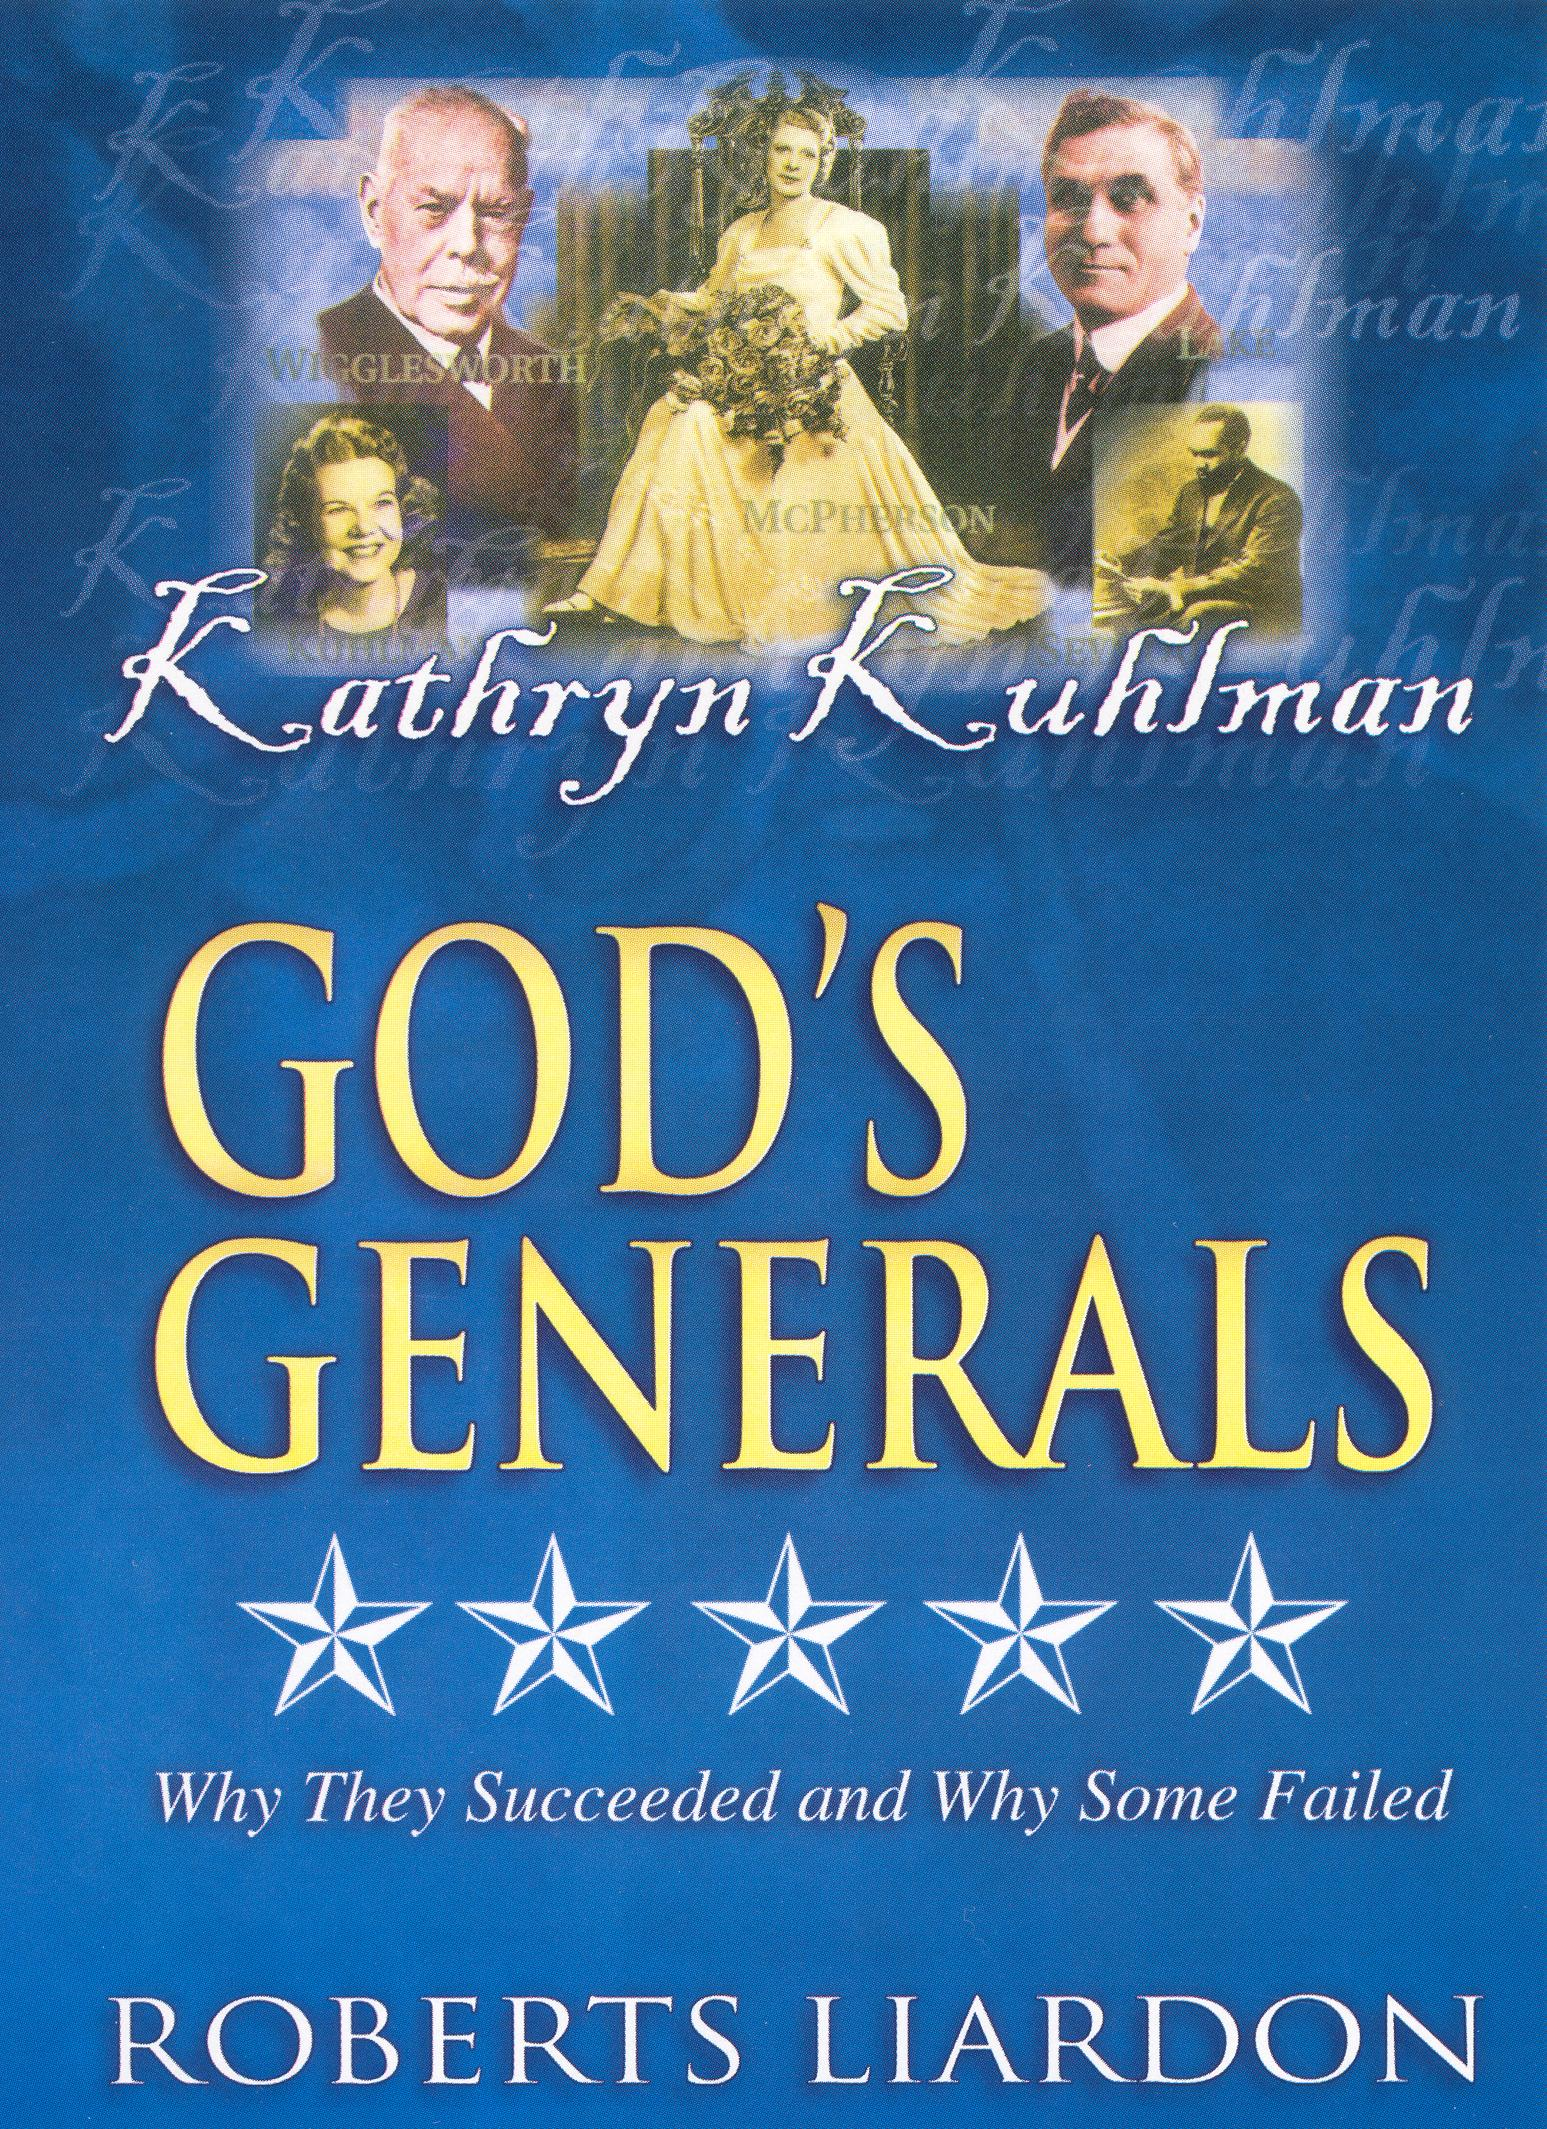 God's Generals: Kathryn Kuhlman - The Woman Who Believed in Miracles